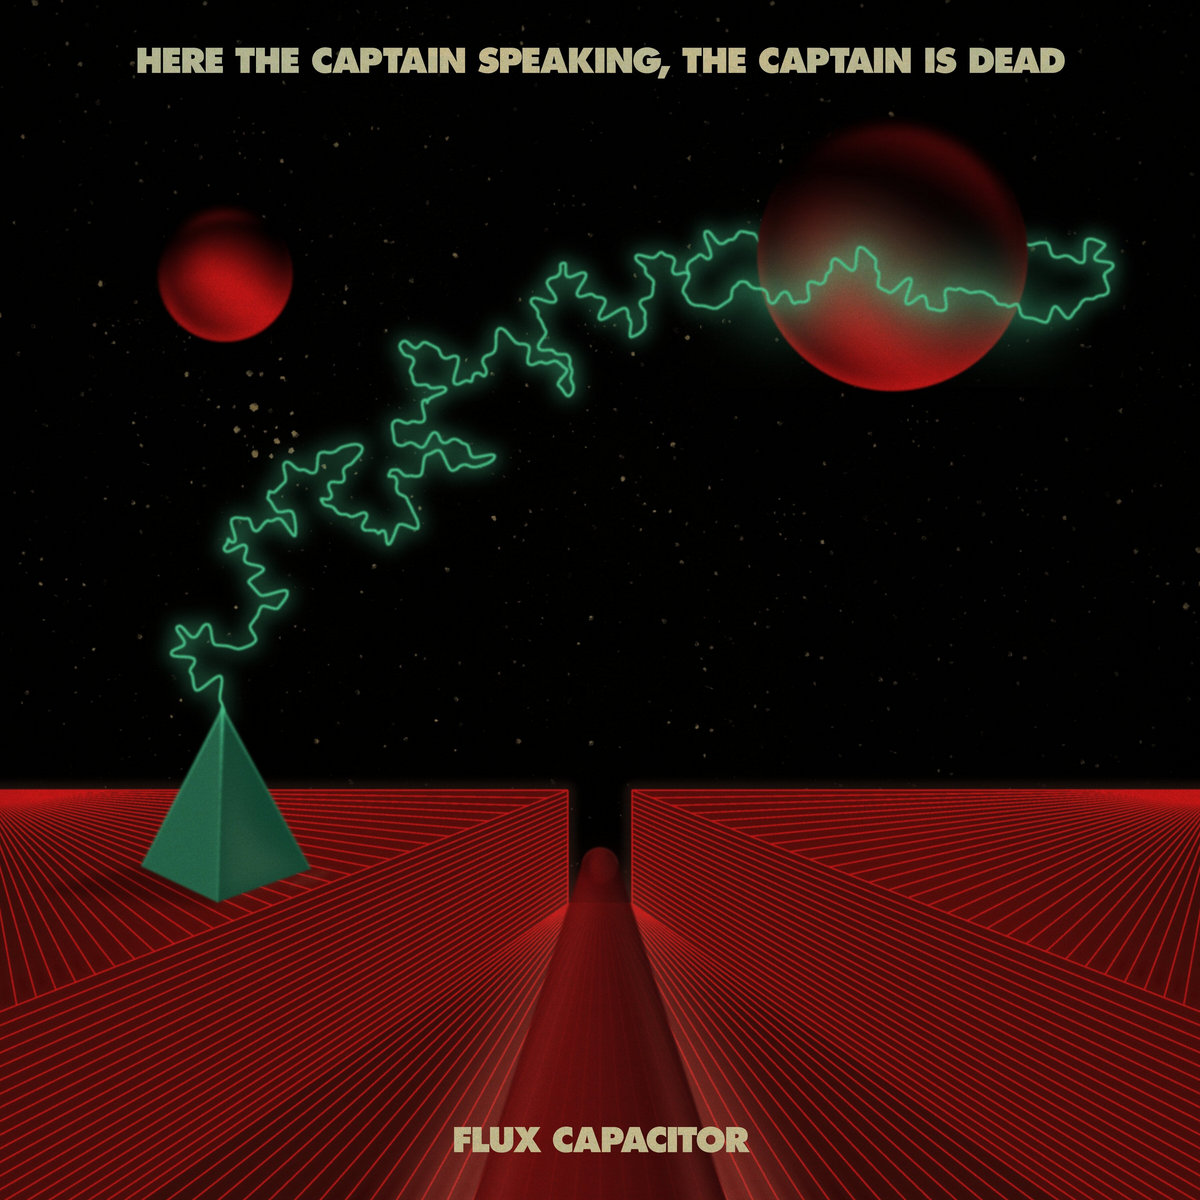 Reseña: HERE THE CAPTAIN SPEAKING, THE CAPTAIN IS DEAD.- 'Flux Capacitor'